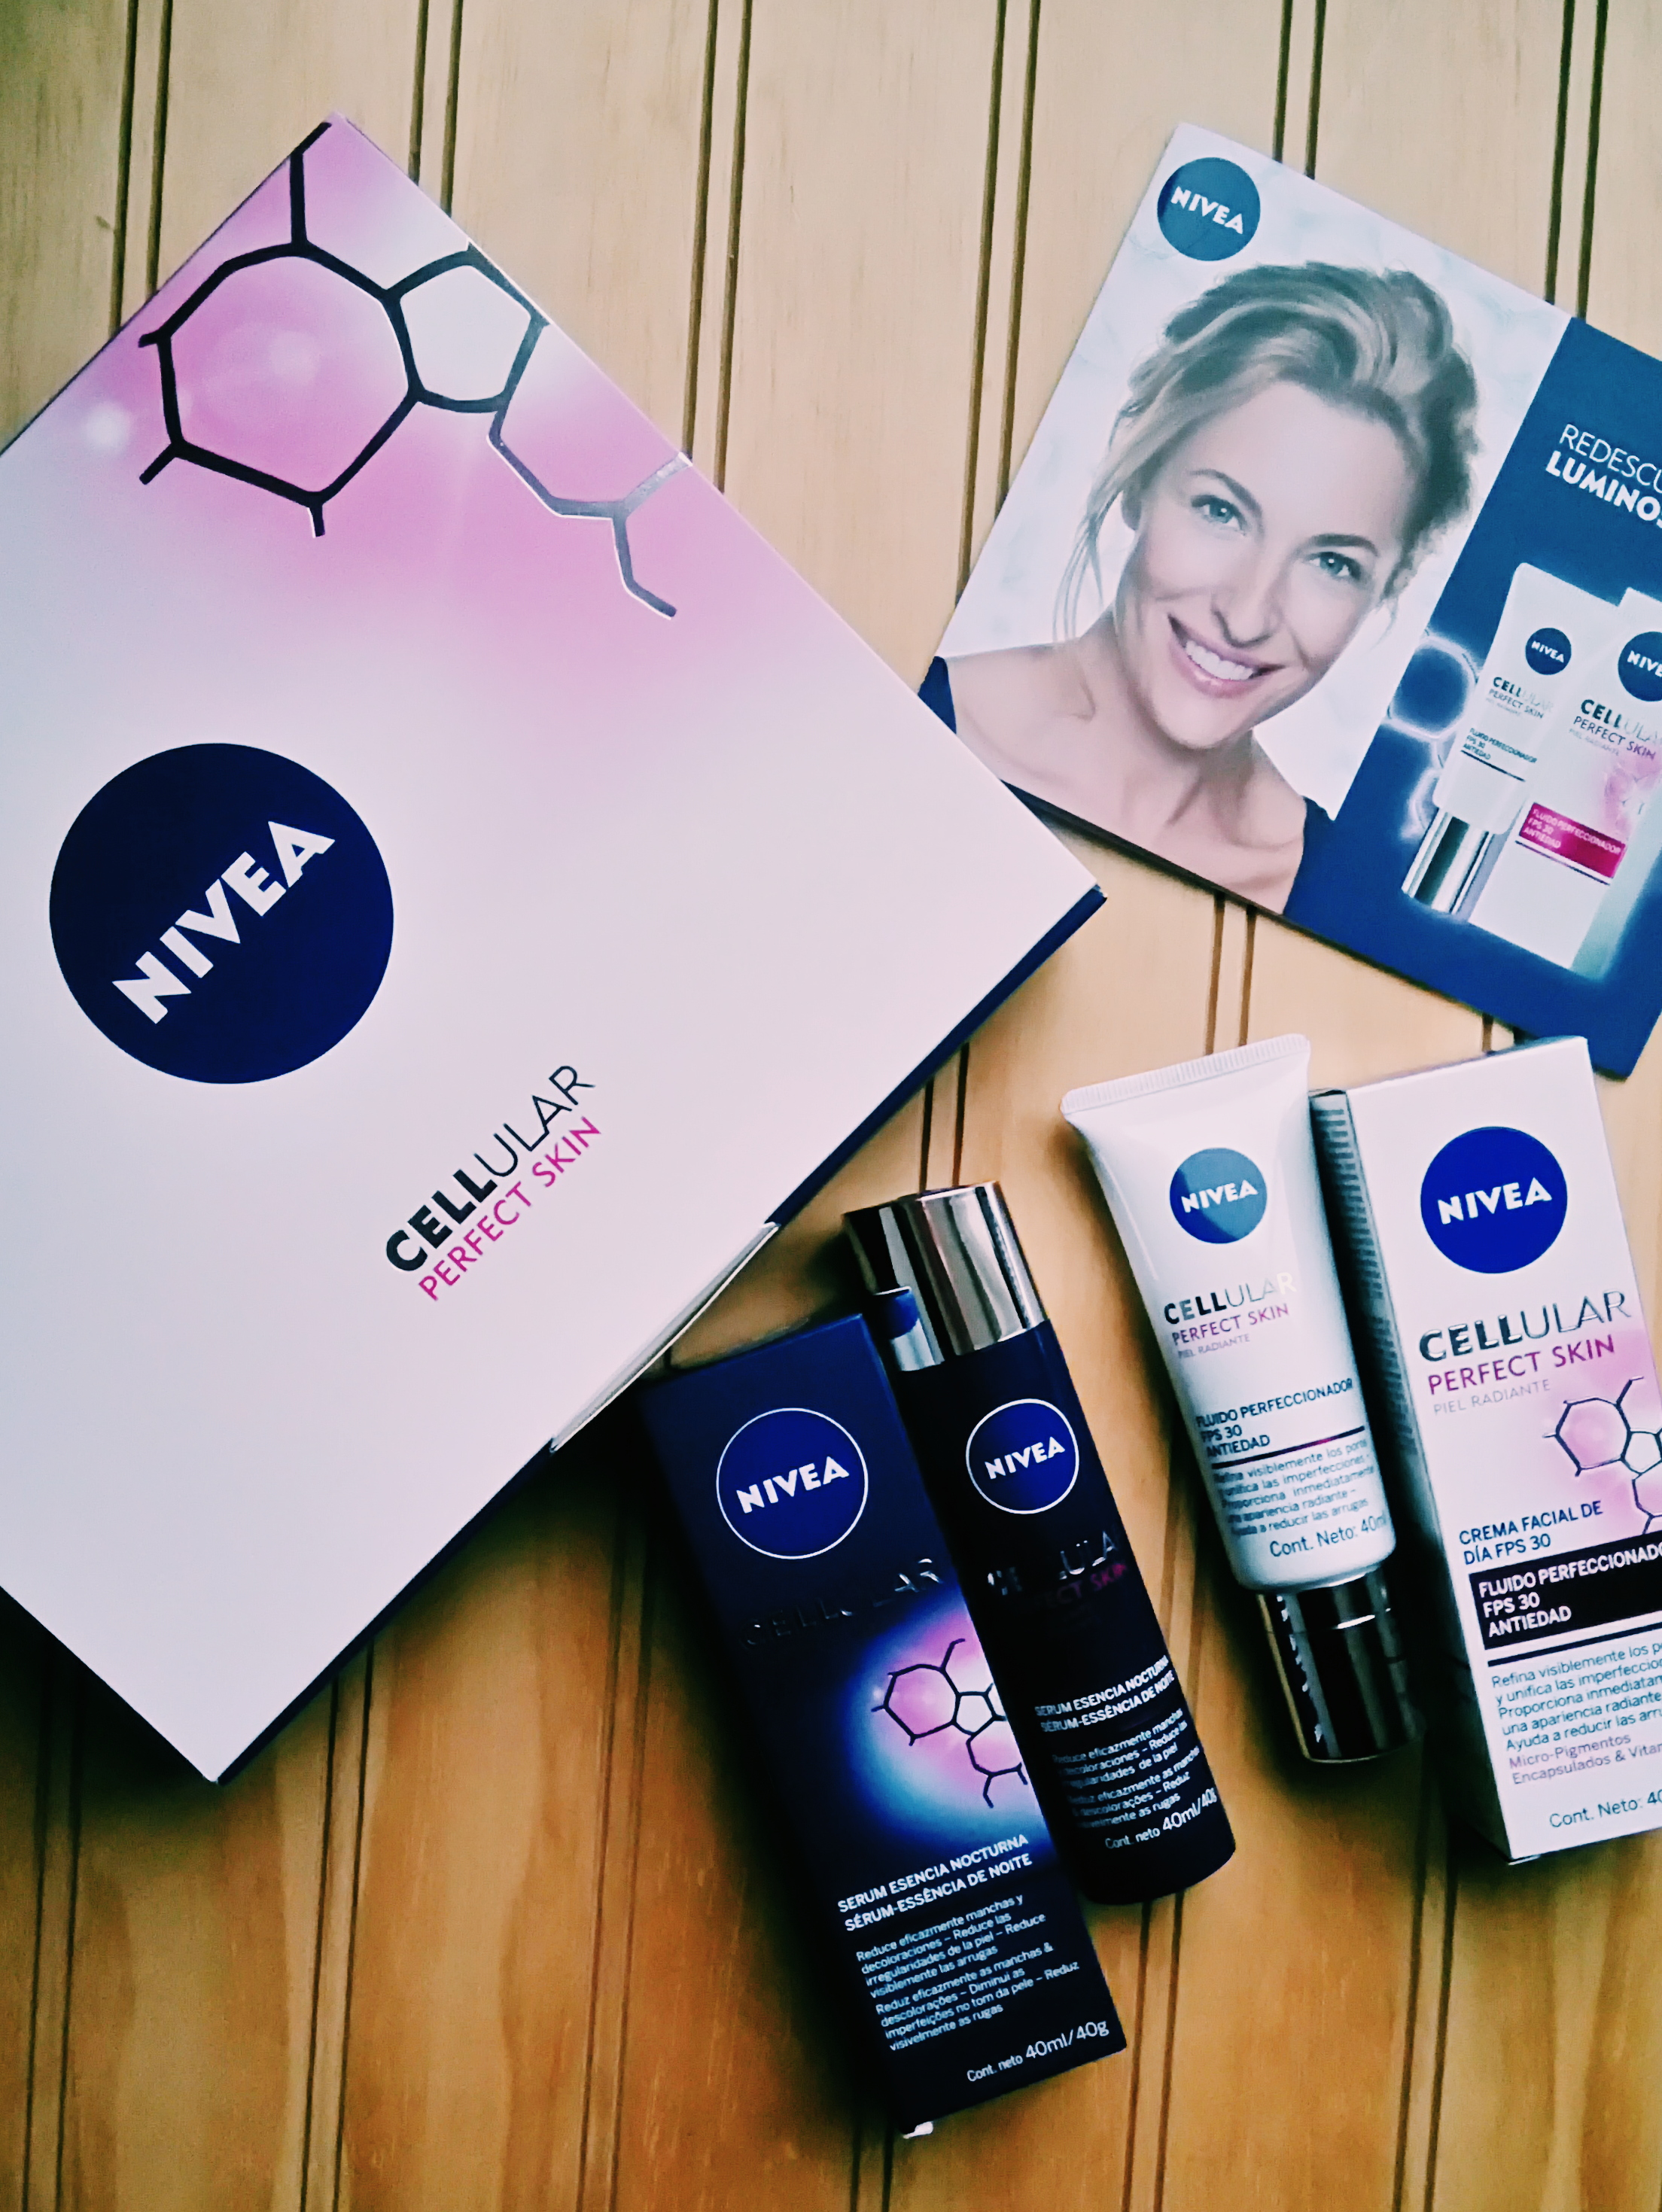 nivea cellular perfect skin